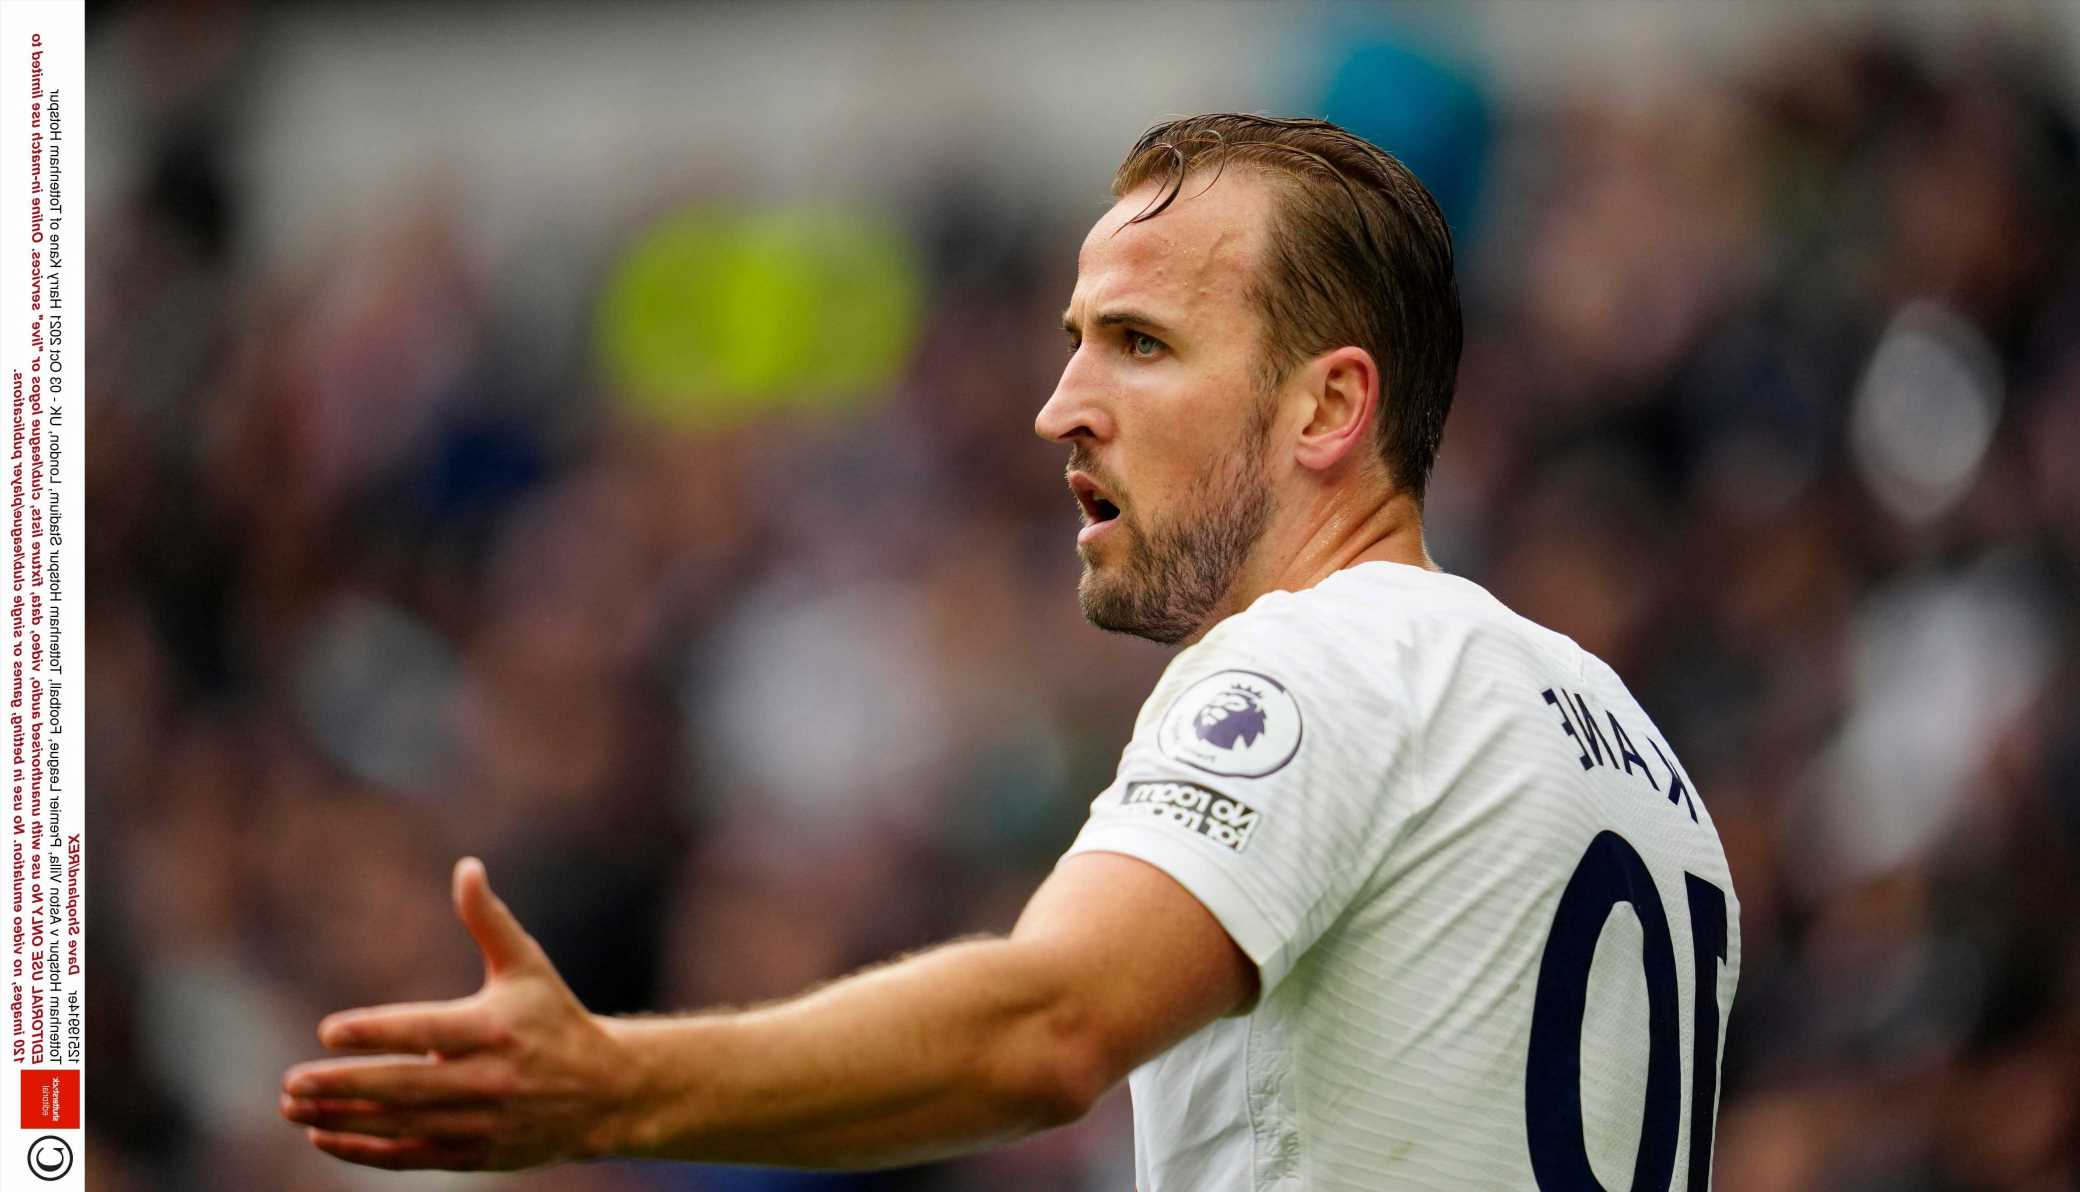 'Harry Kane loves Tottenham' – Spurs transfer chief appears to confirm England star WON'T quit and will lead 'rebuild'